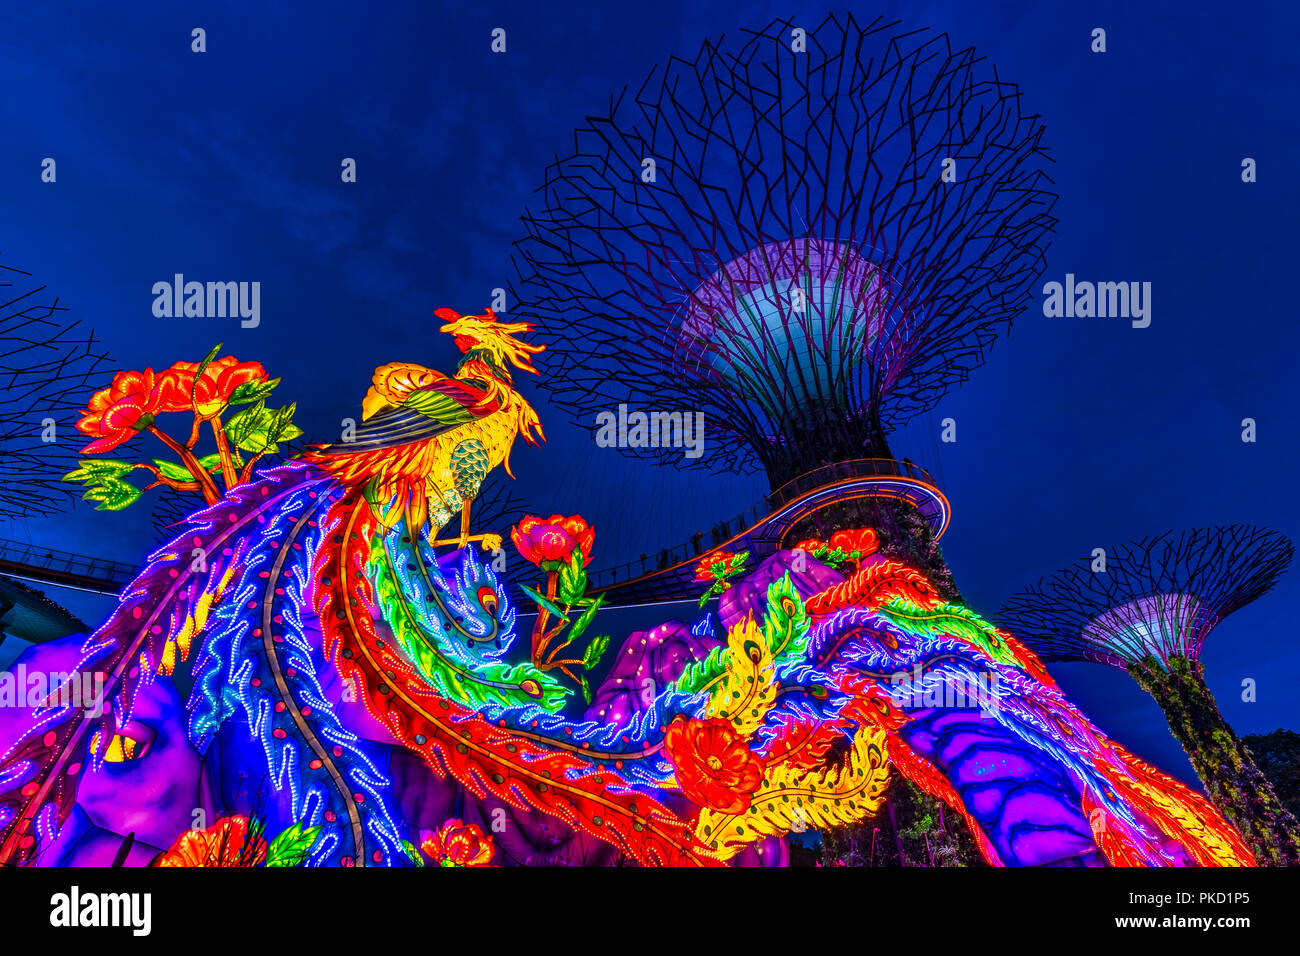 Experience the Mid-Autumn Festival in Gardens by the Bay, Singapore - Stock Image